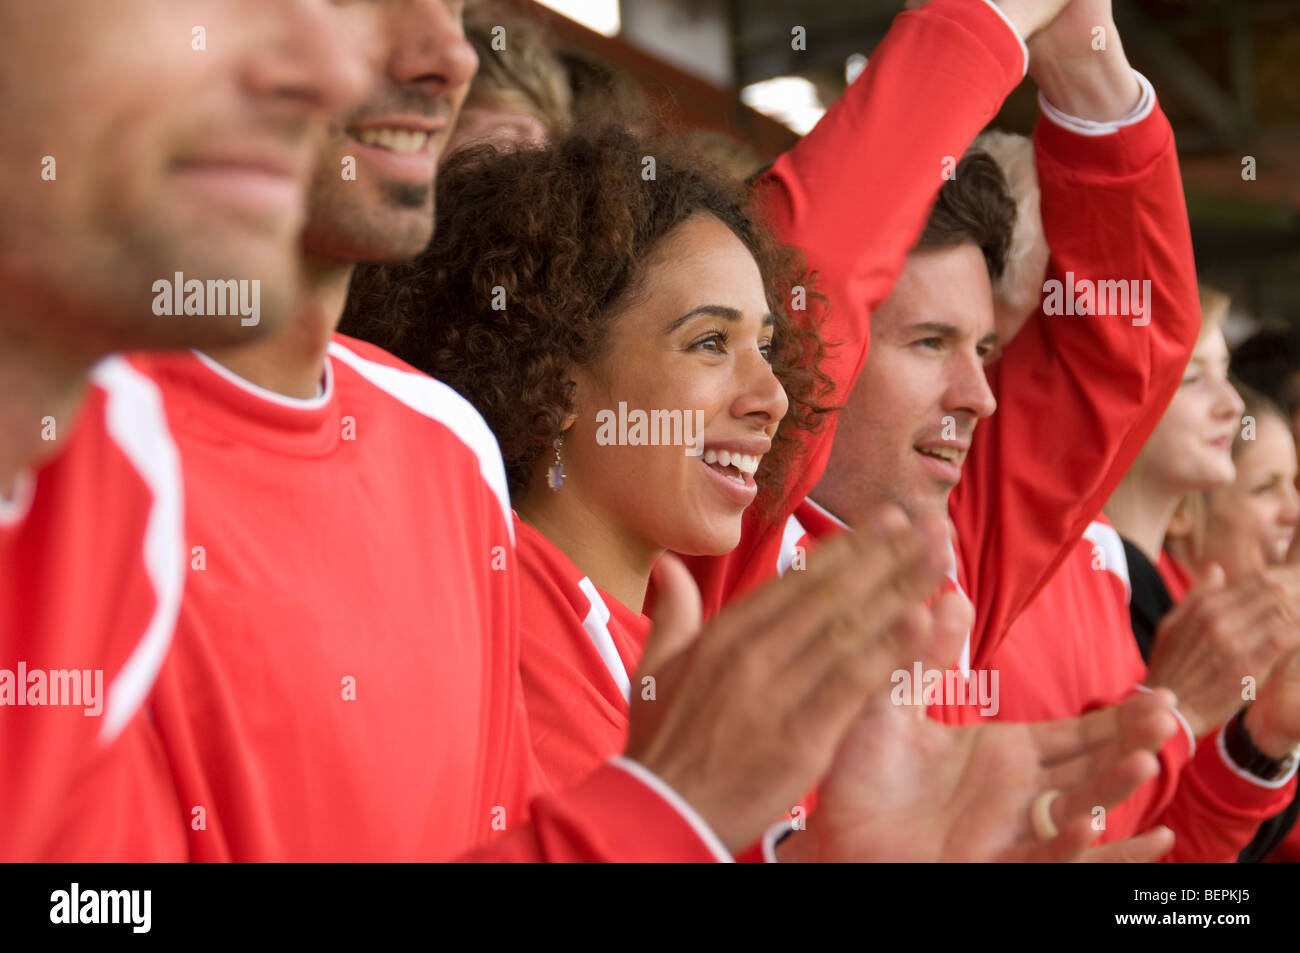 Fans clapping at football match - Stock Image